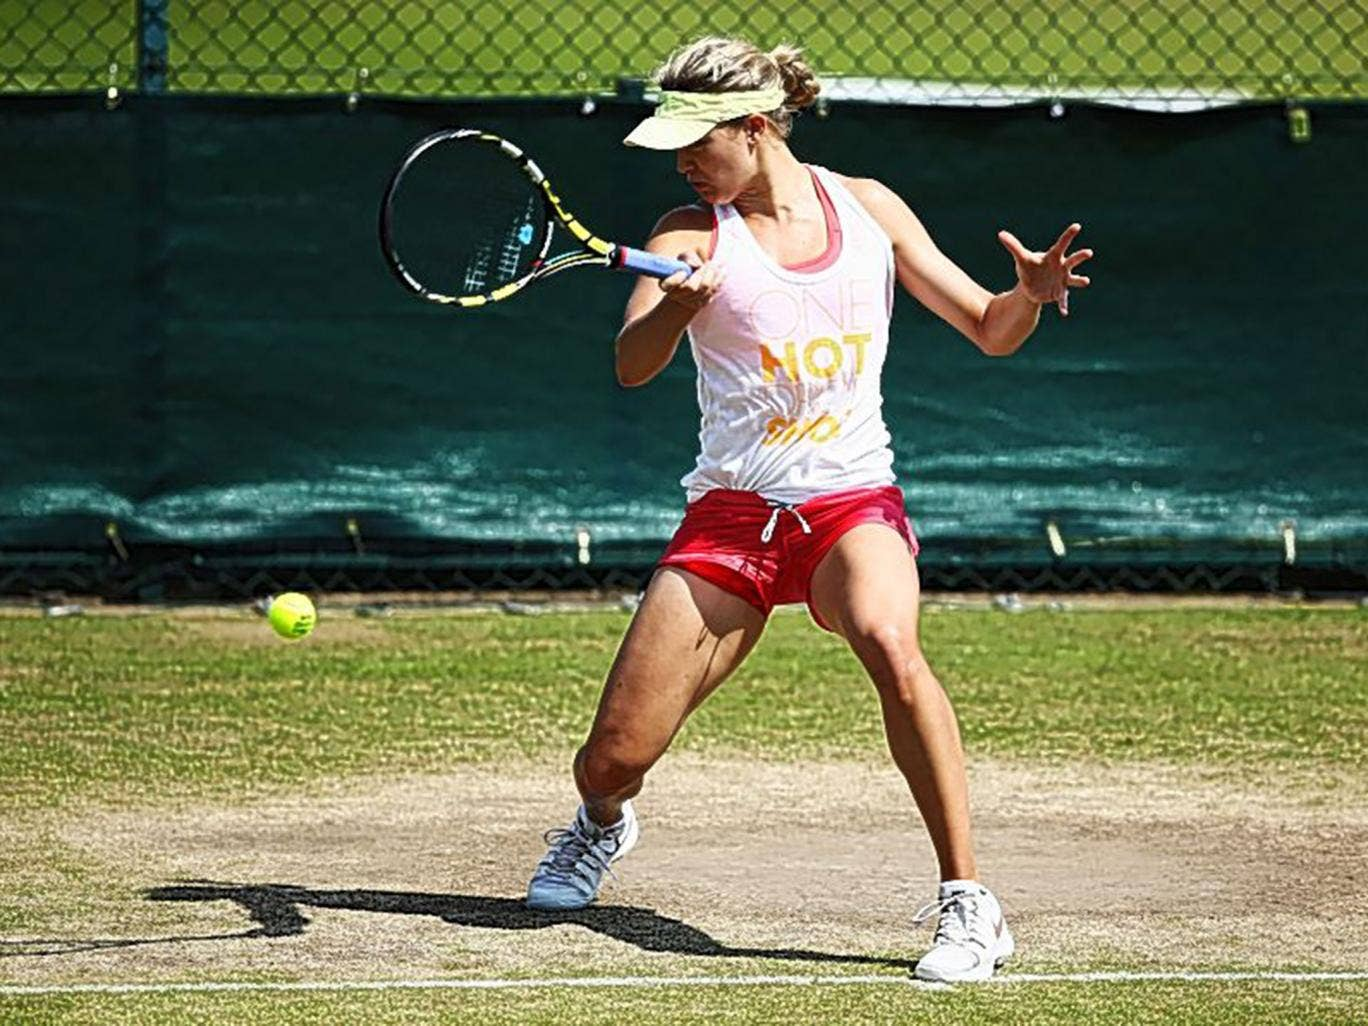 Canada's Eugenie Bouchard at a practice session for the final yesterday